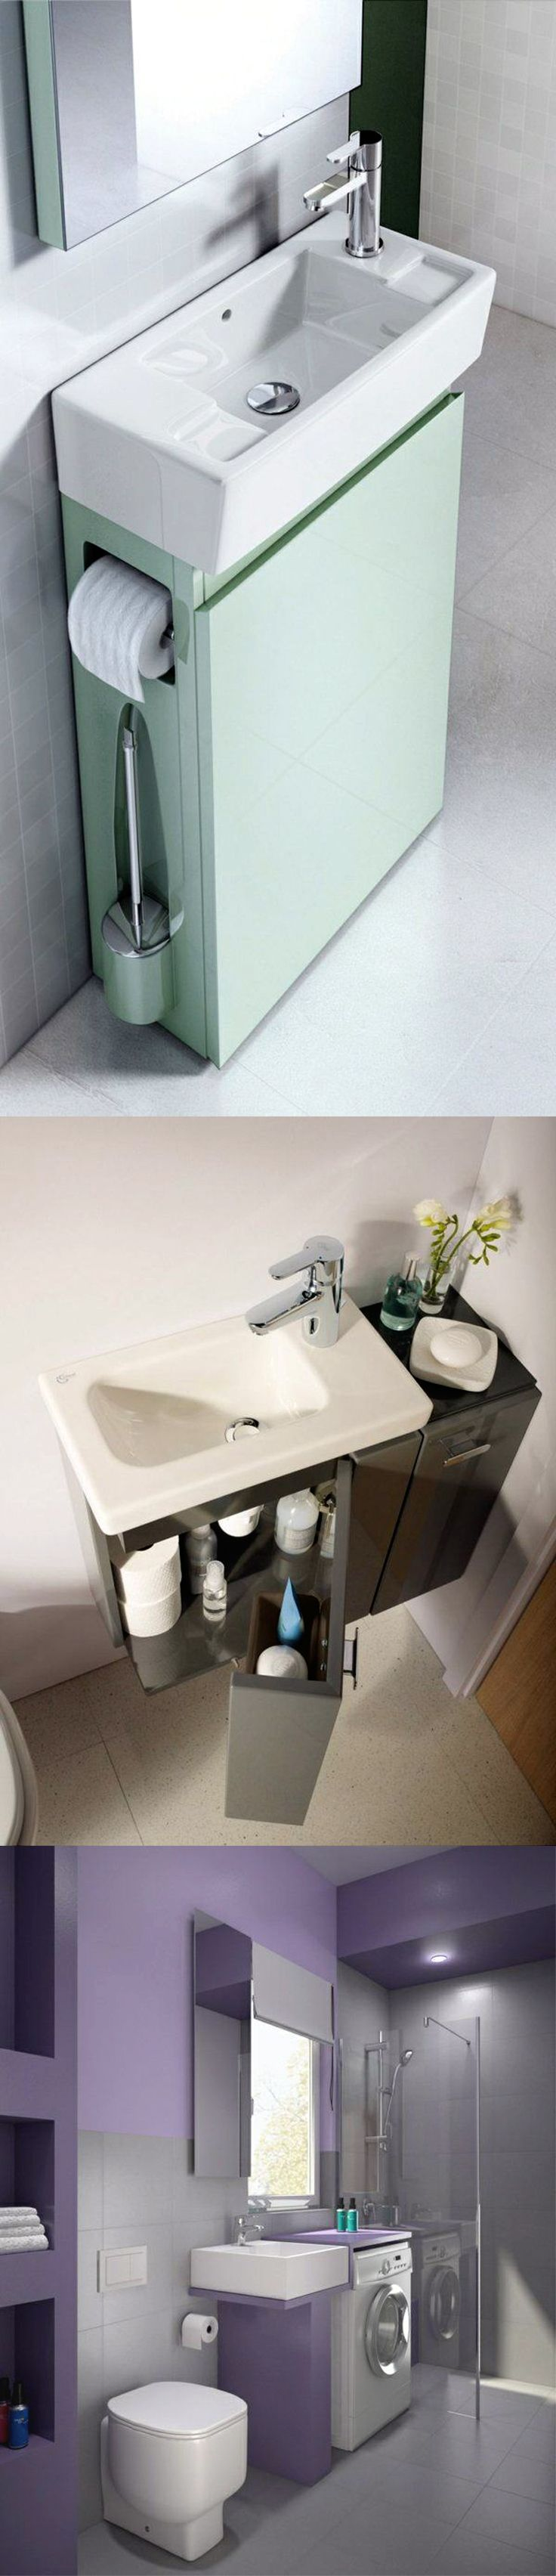 best 25 sinks ideas on pinterest bathroom sinks. Black Bedroom Furniture Sets. Home Design Ideas